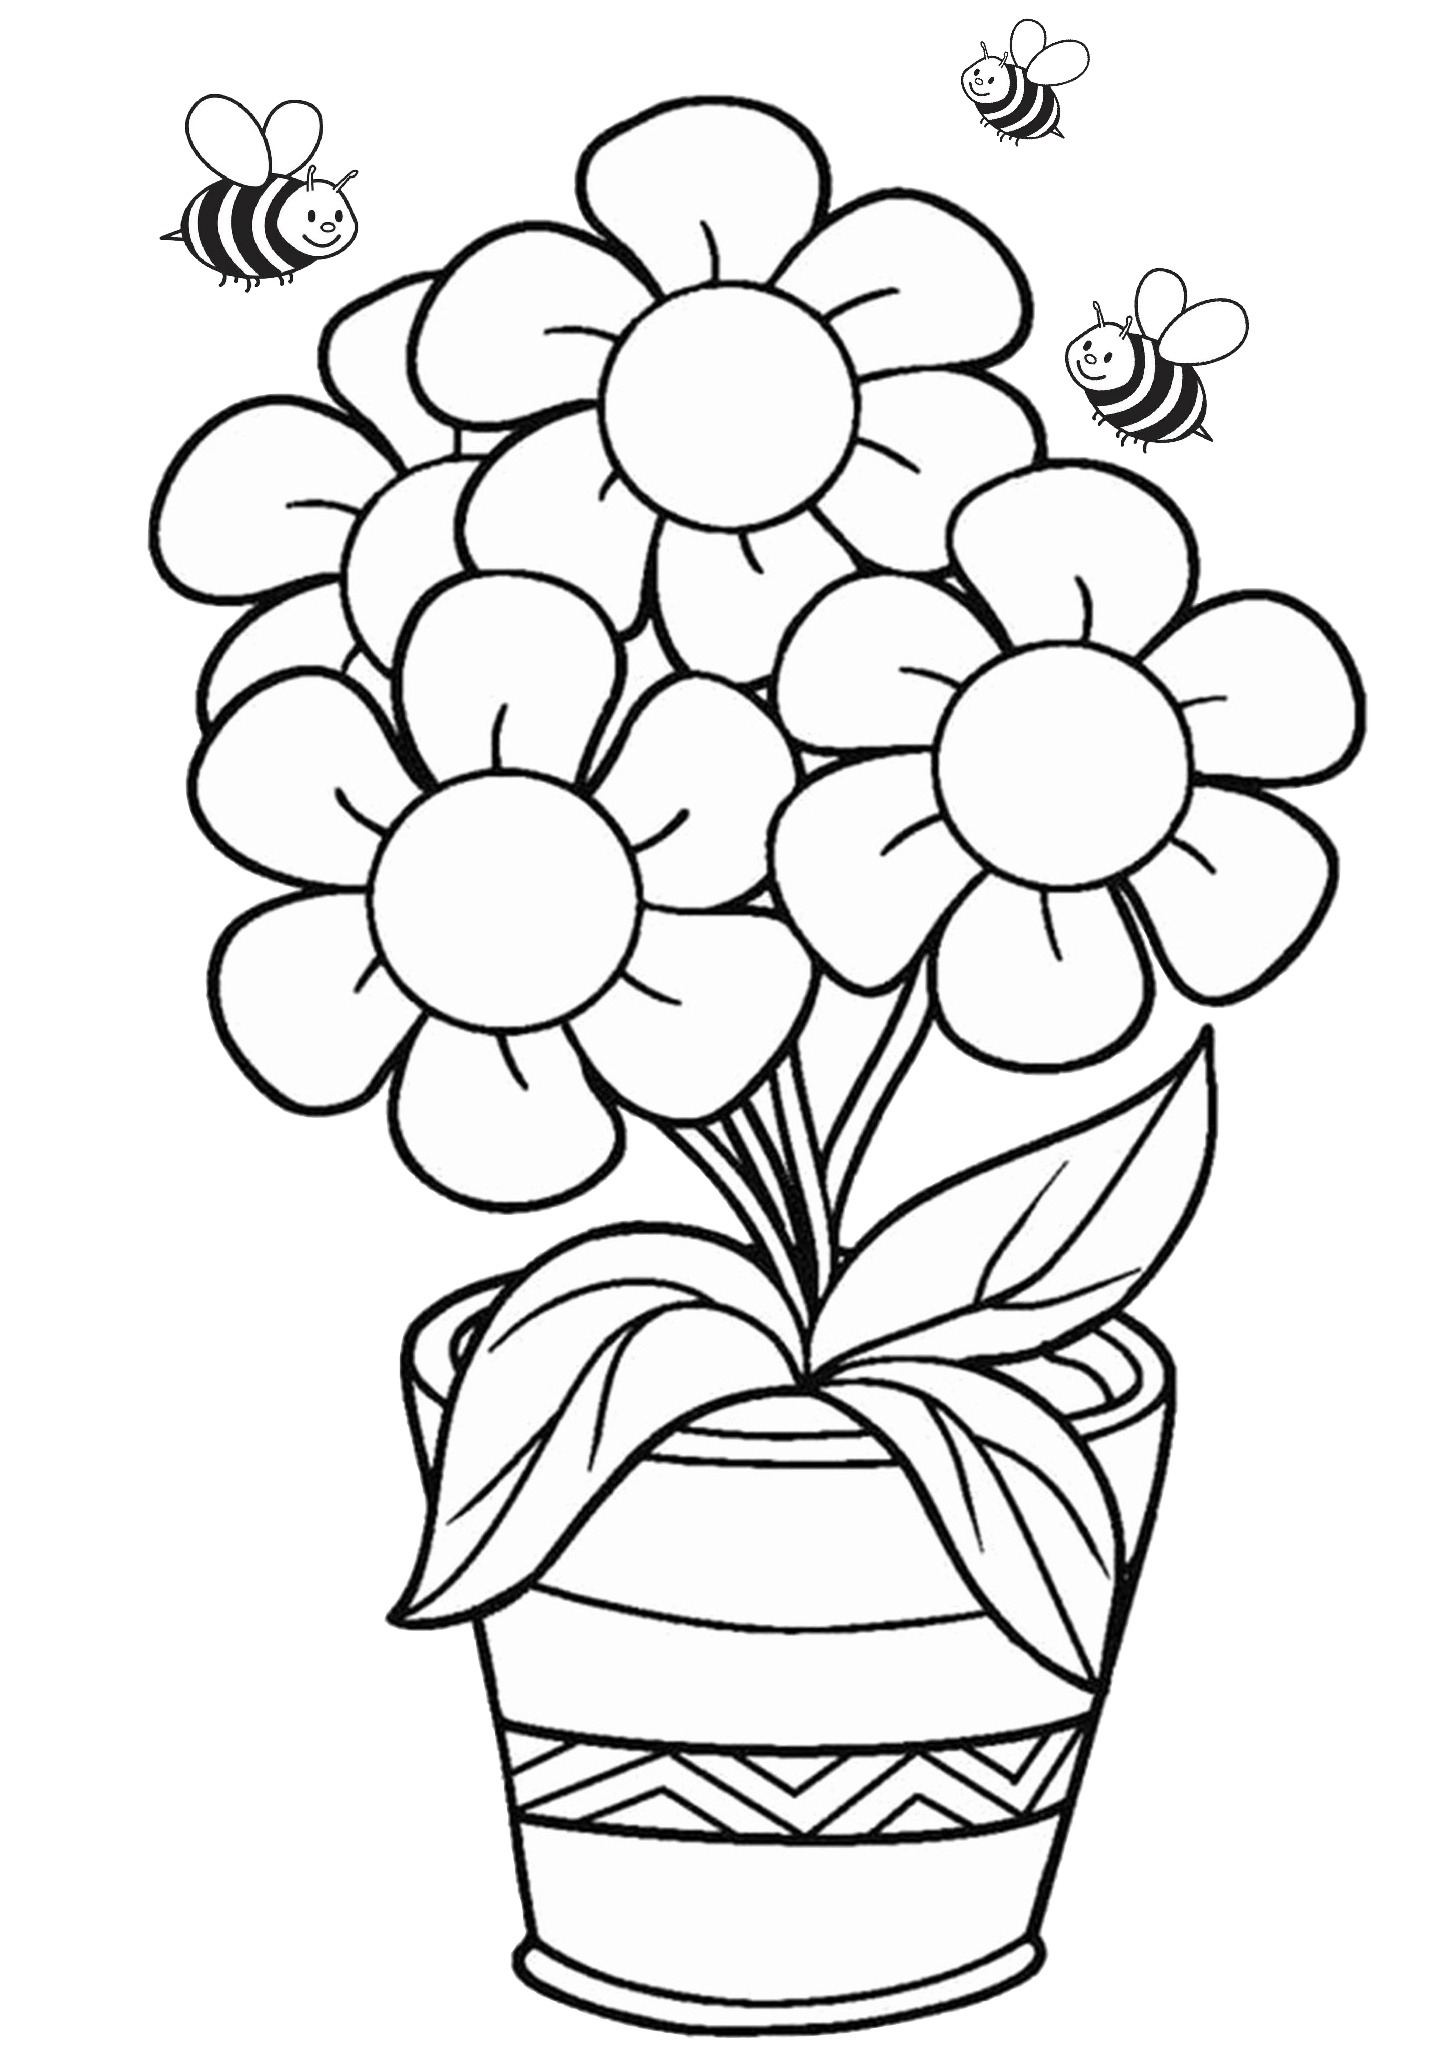 Free Flower Coloring Pages for Kids Printable PDF - Print ...